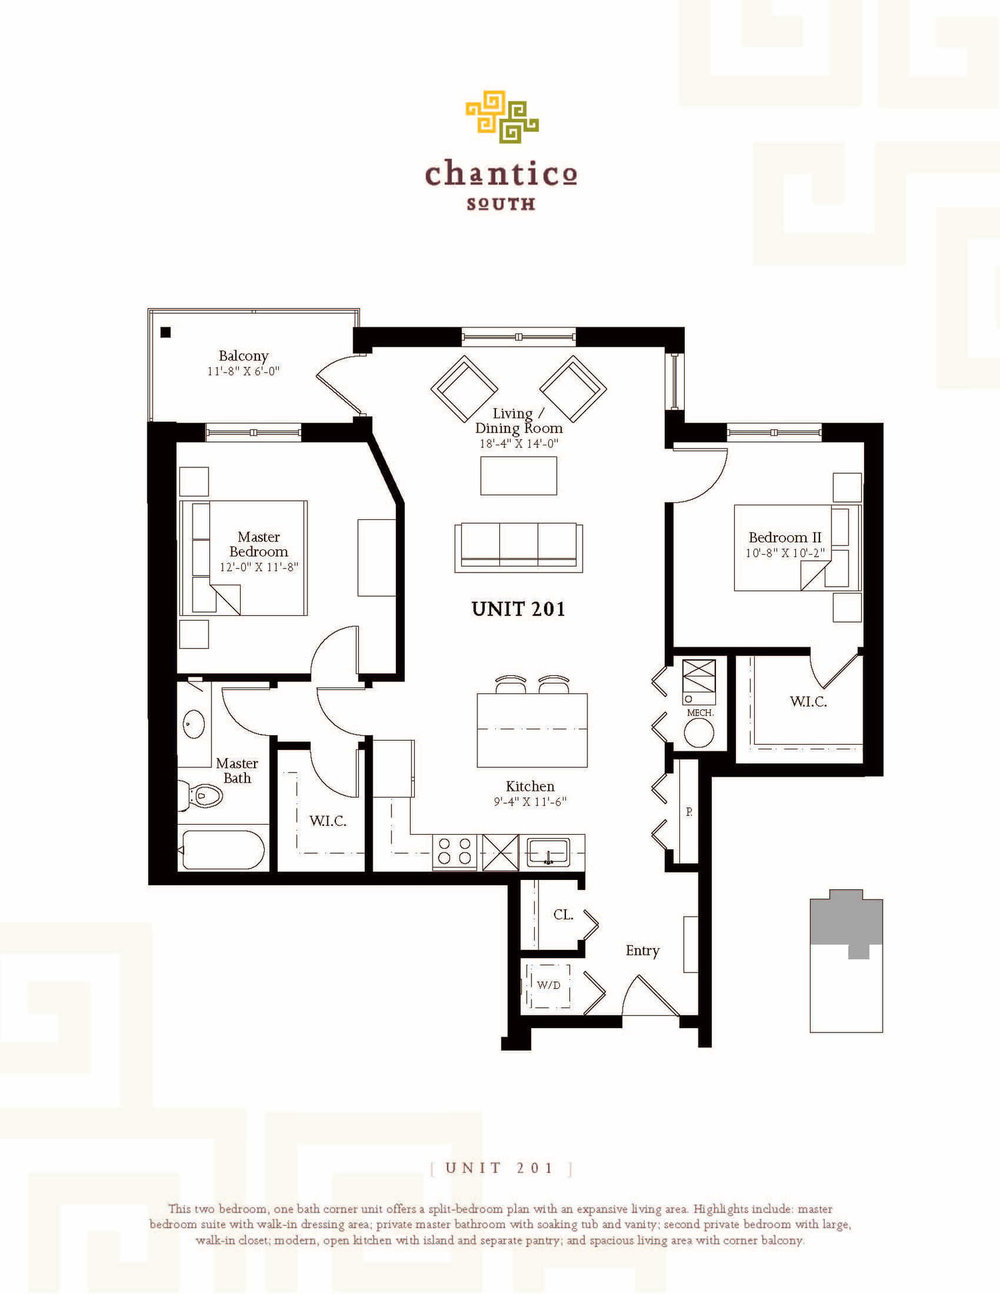 Chicago-apartment-201-Chantico-South-Floorplans.jpg